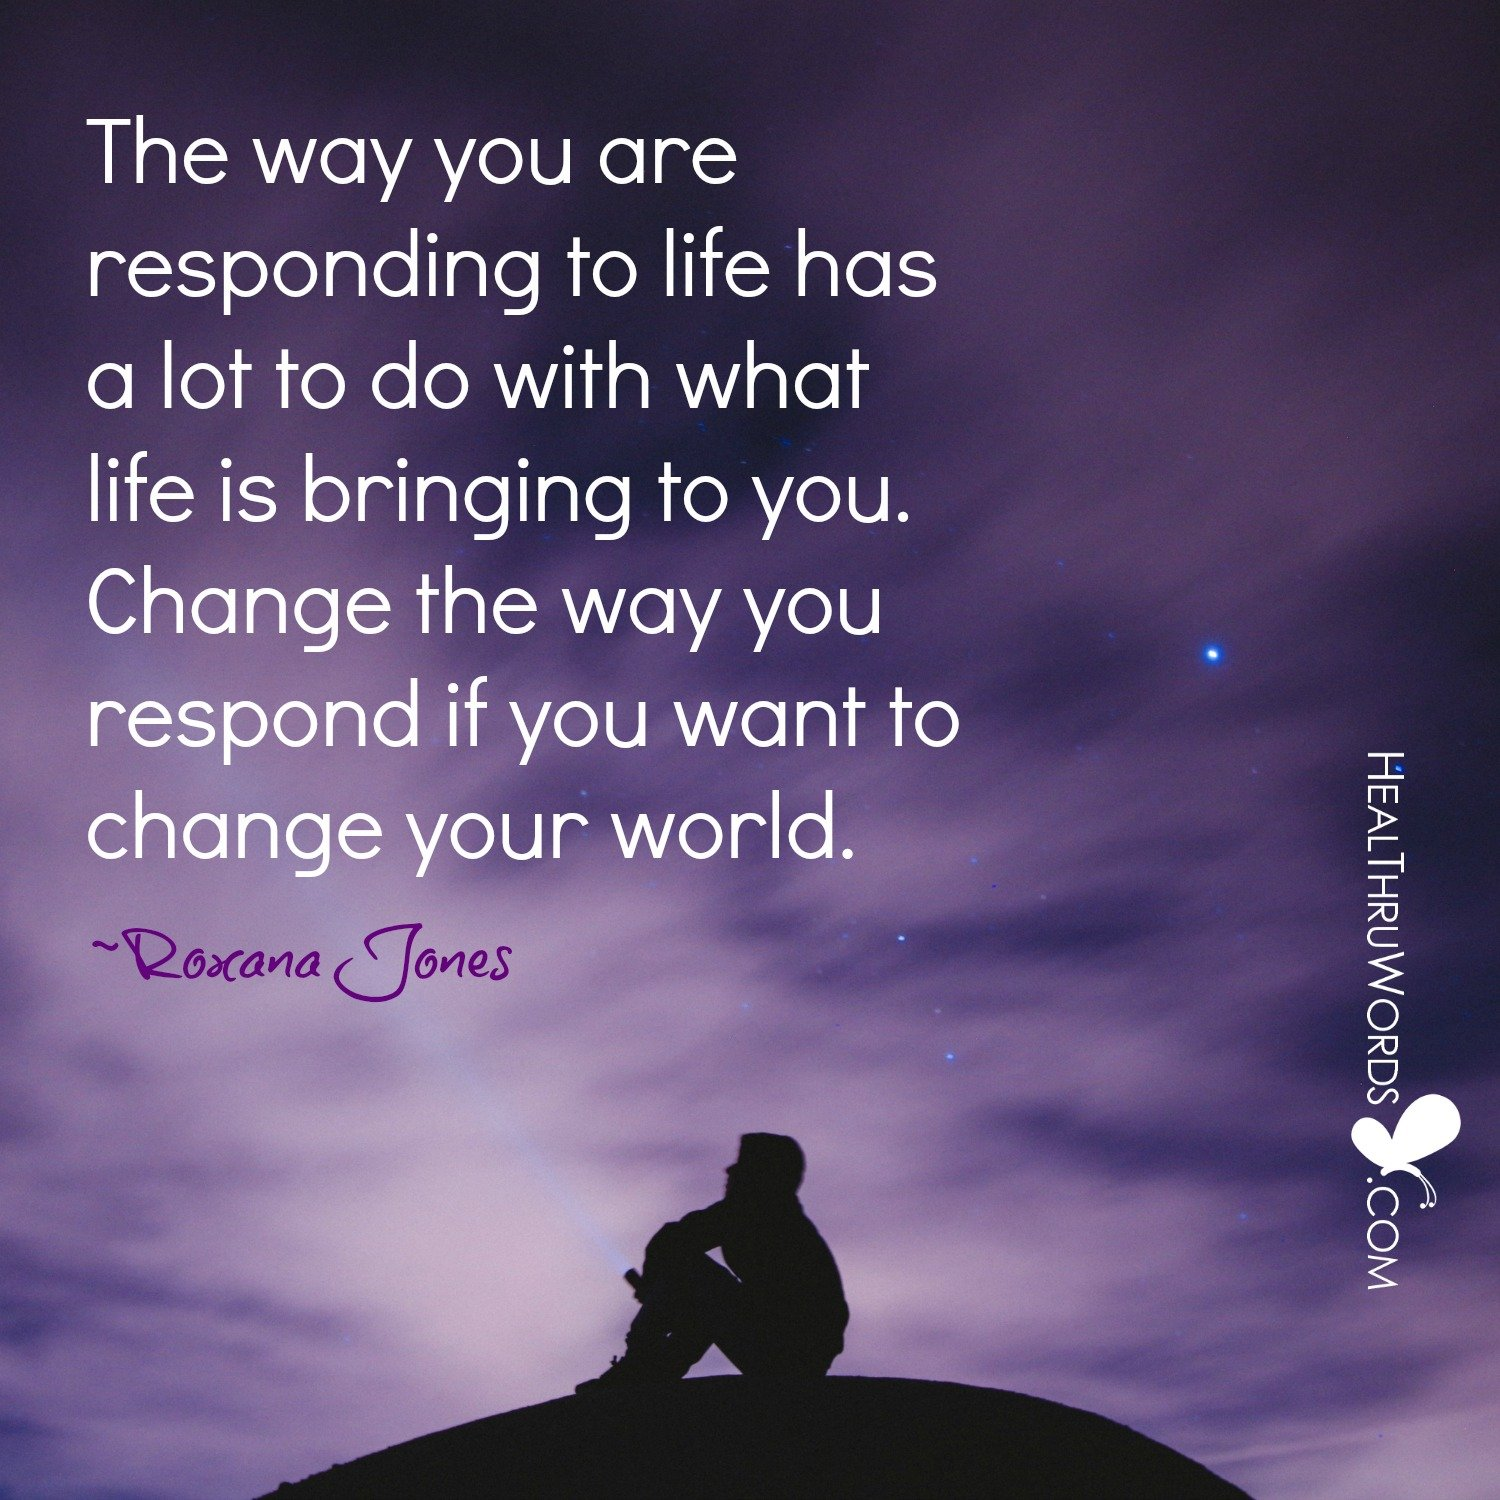 Inspirational Image: New Responses